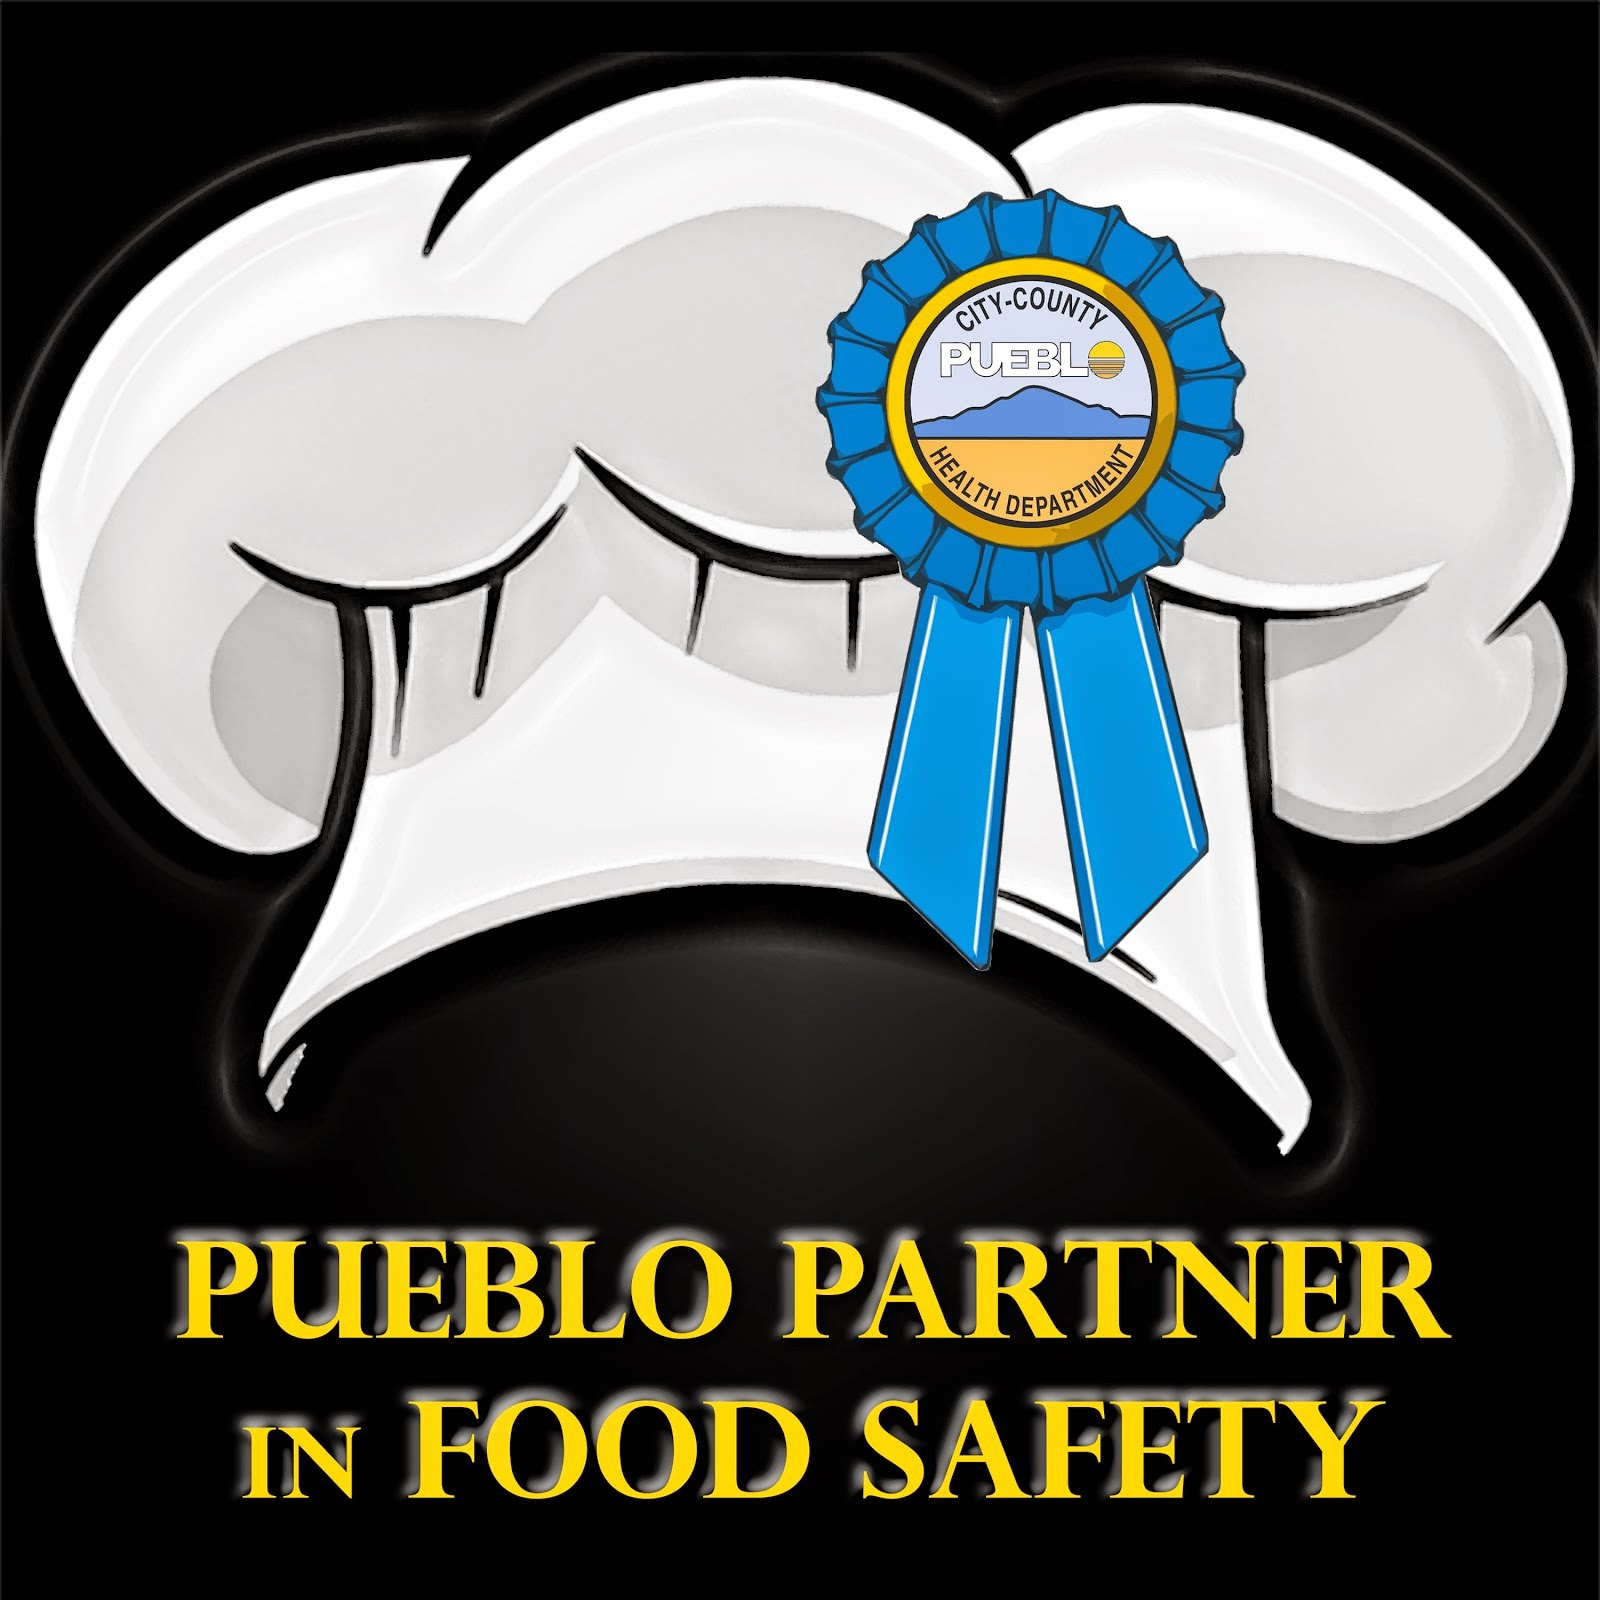 Pueblo Partners in Food Safety